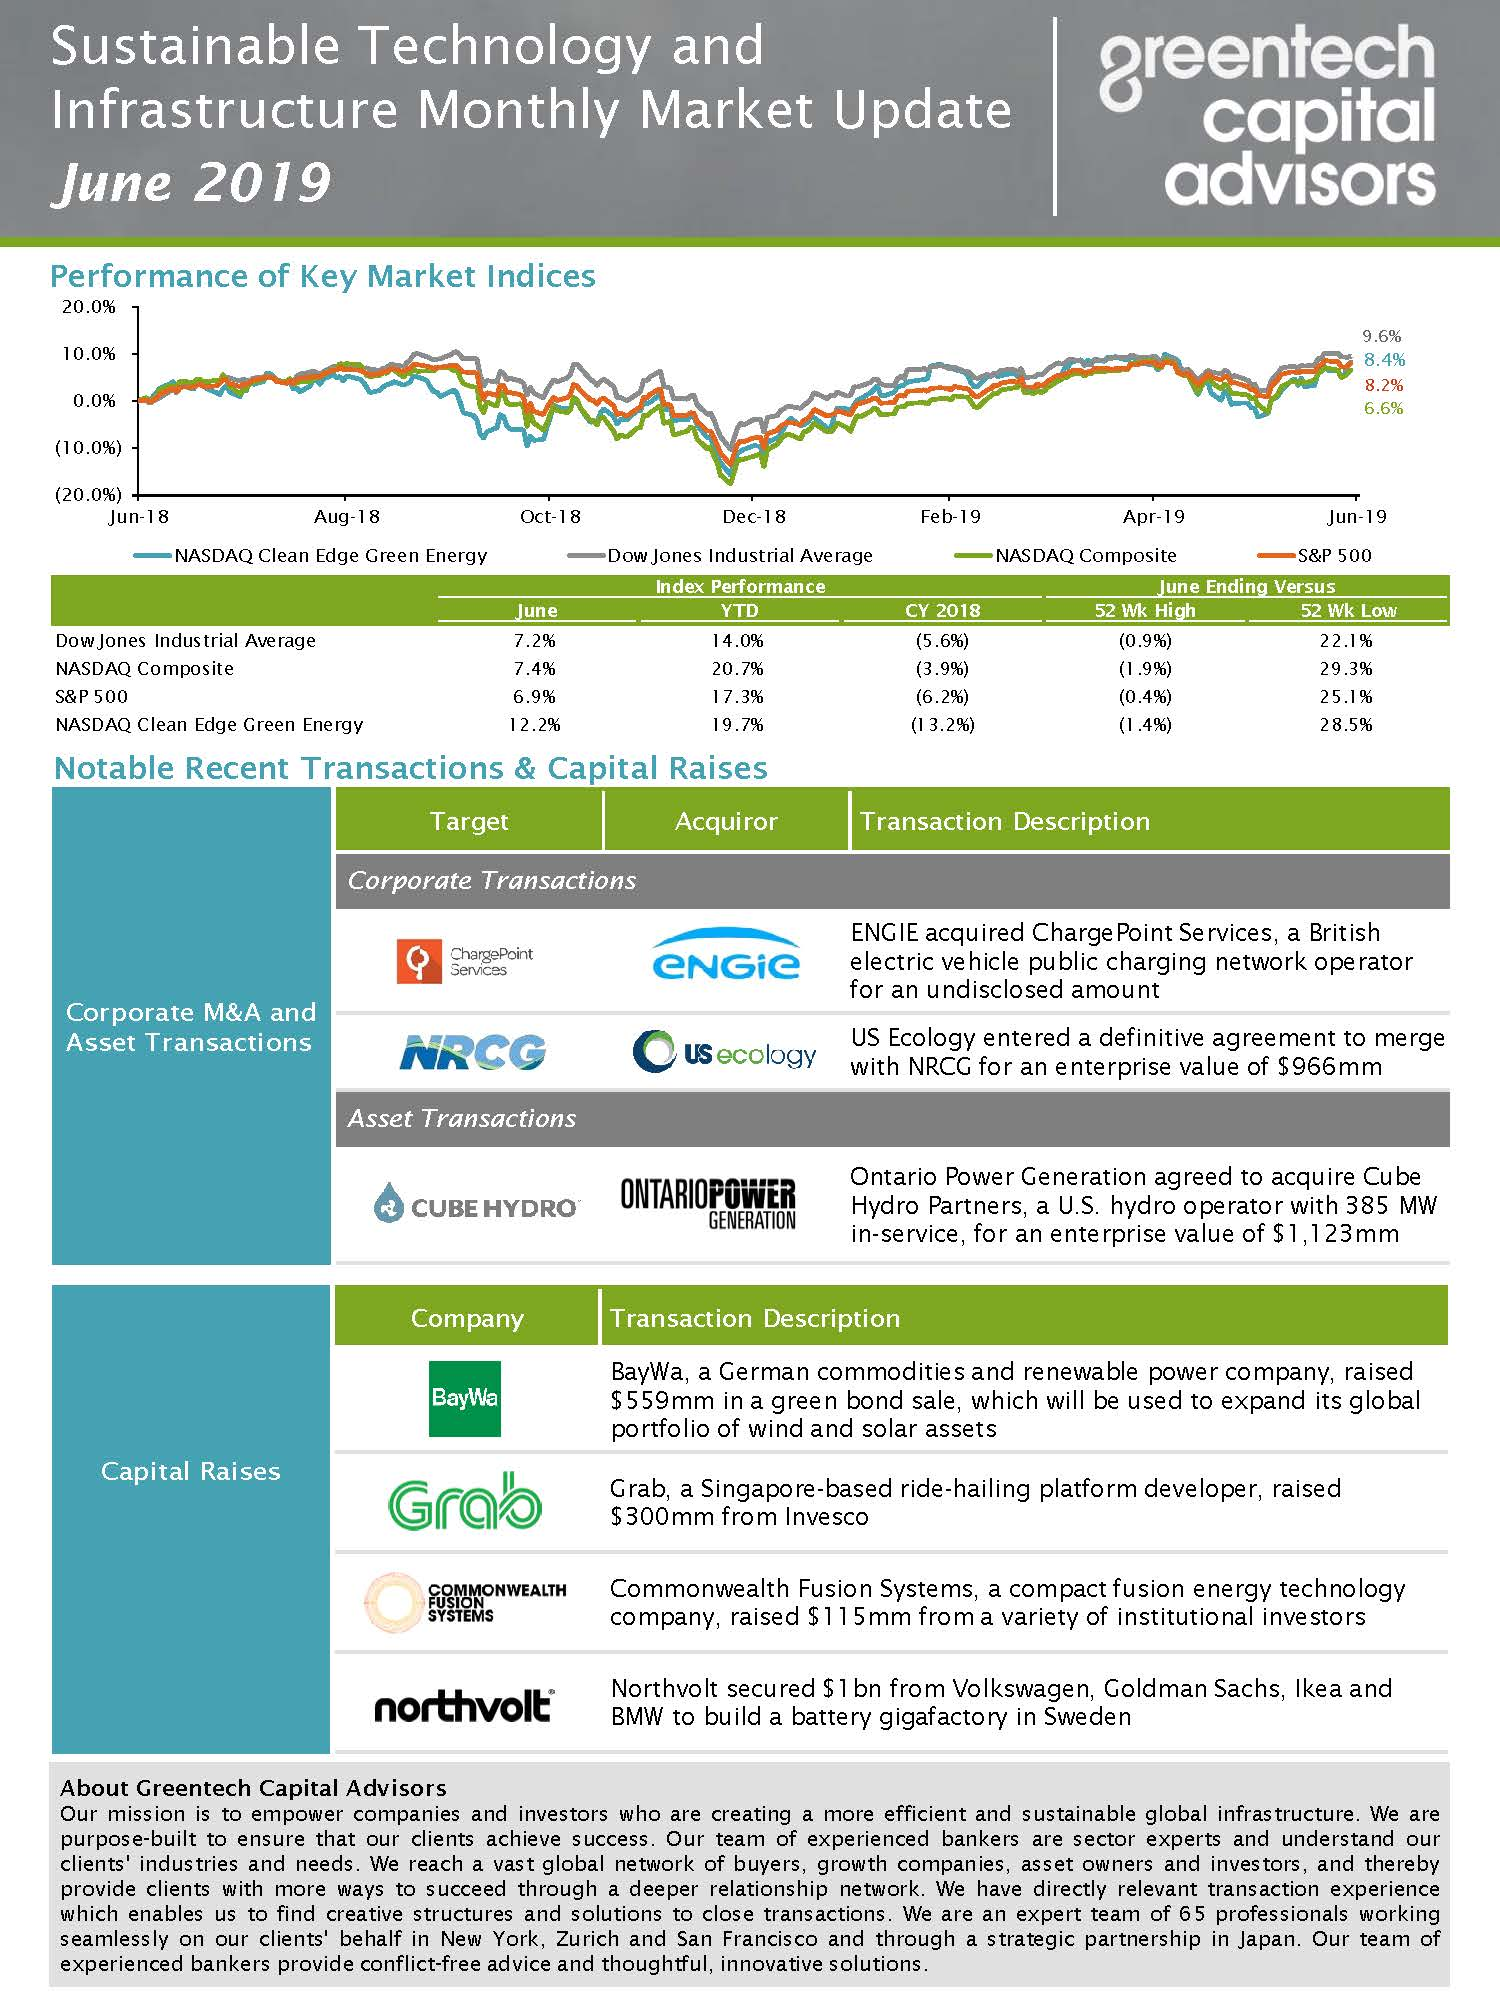 Sustainable Investing Monthly Market Update - June 2019